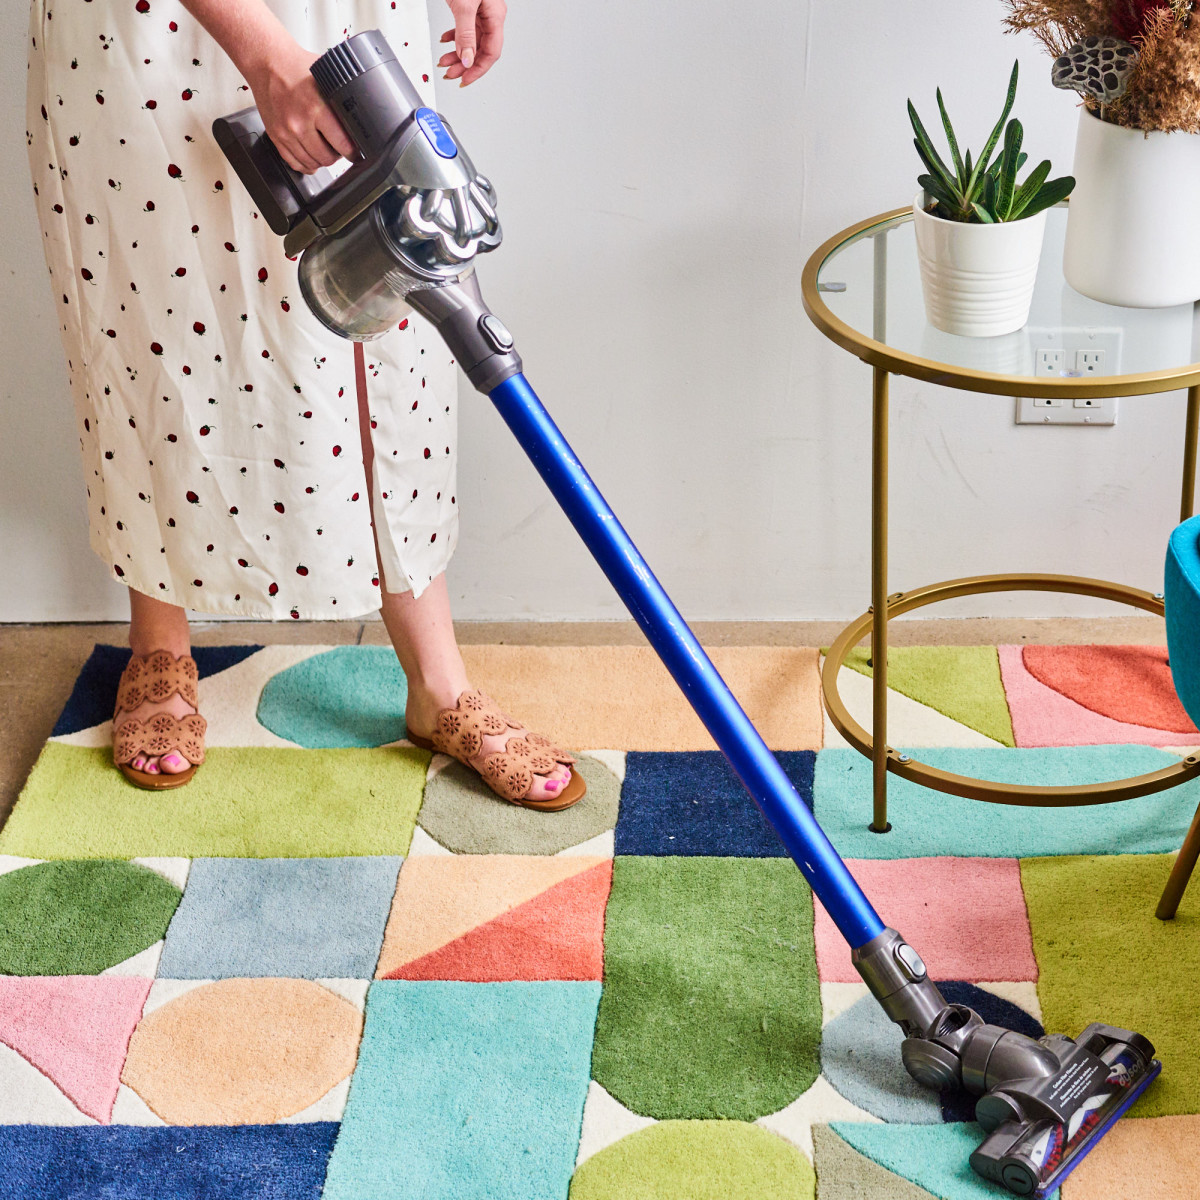 Now's the Time to Buy Some of Dyson's Most Popular Cordless Vacuums